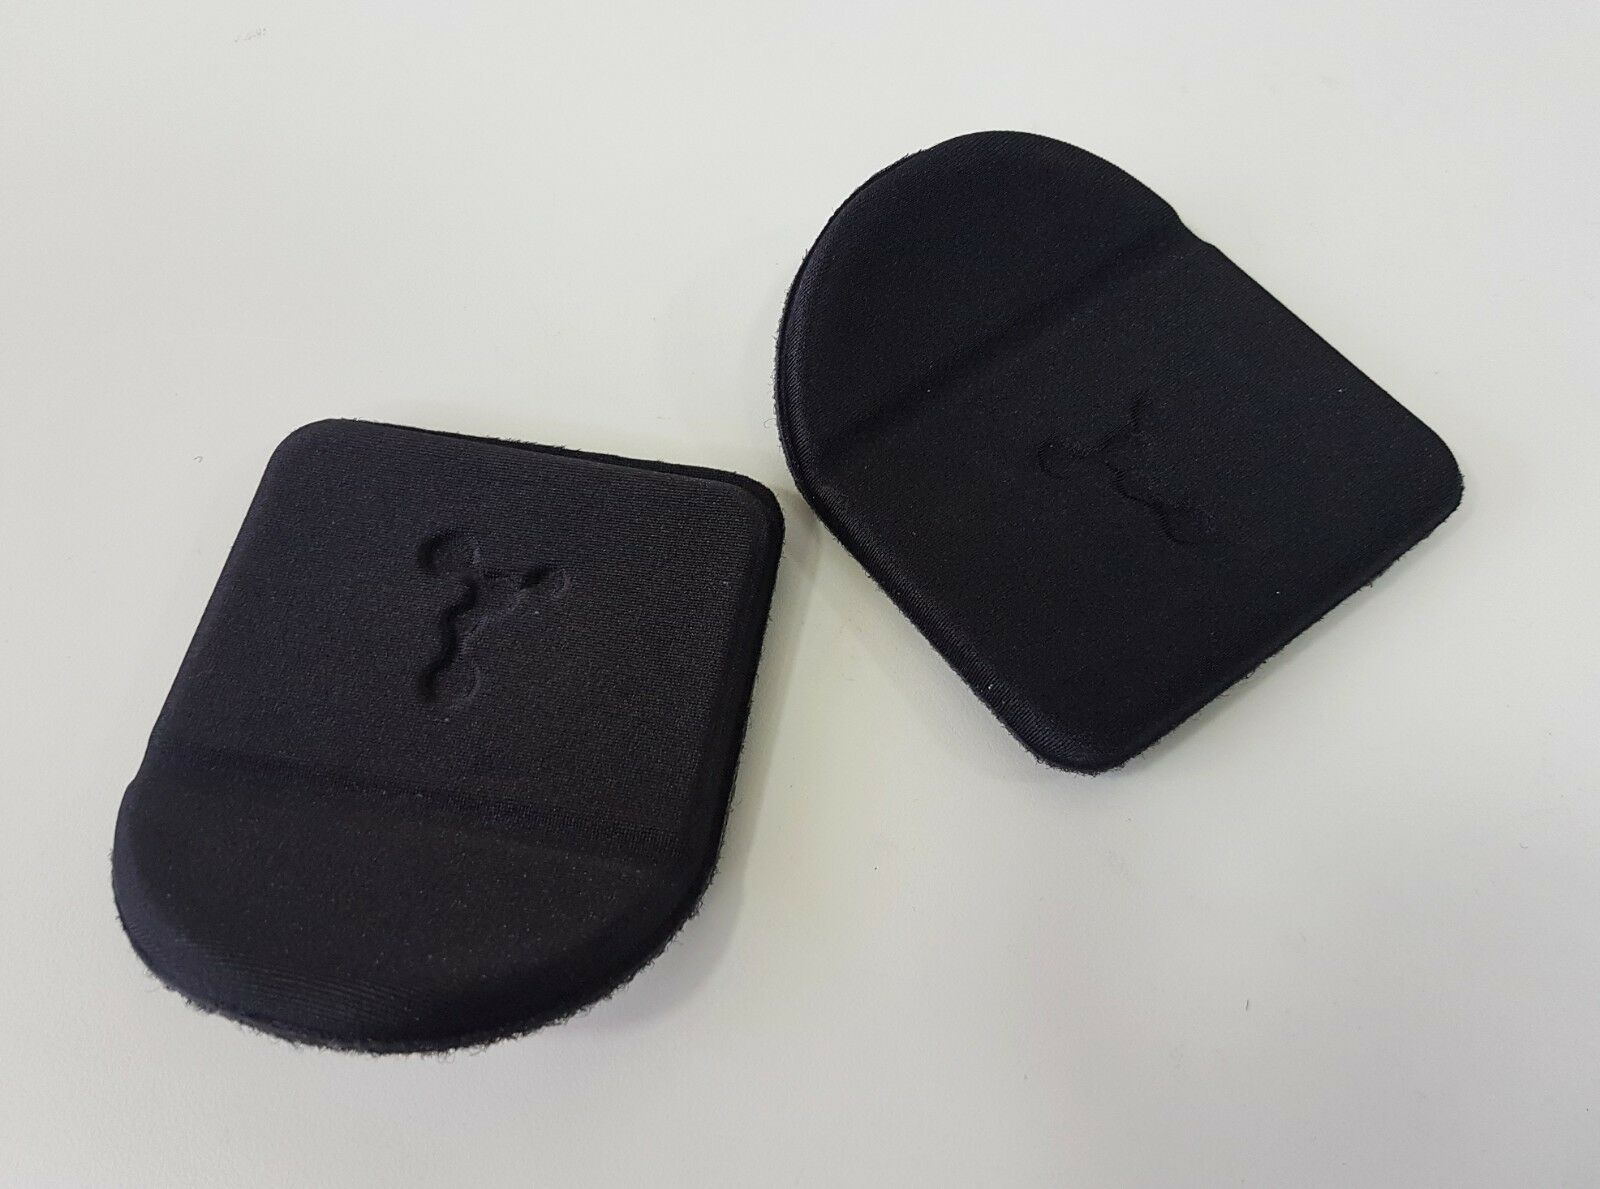 Argon18 Replacement Arm Rest Pad Fit For E-118 Next